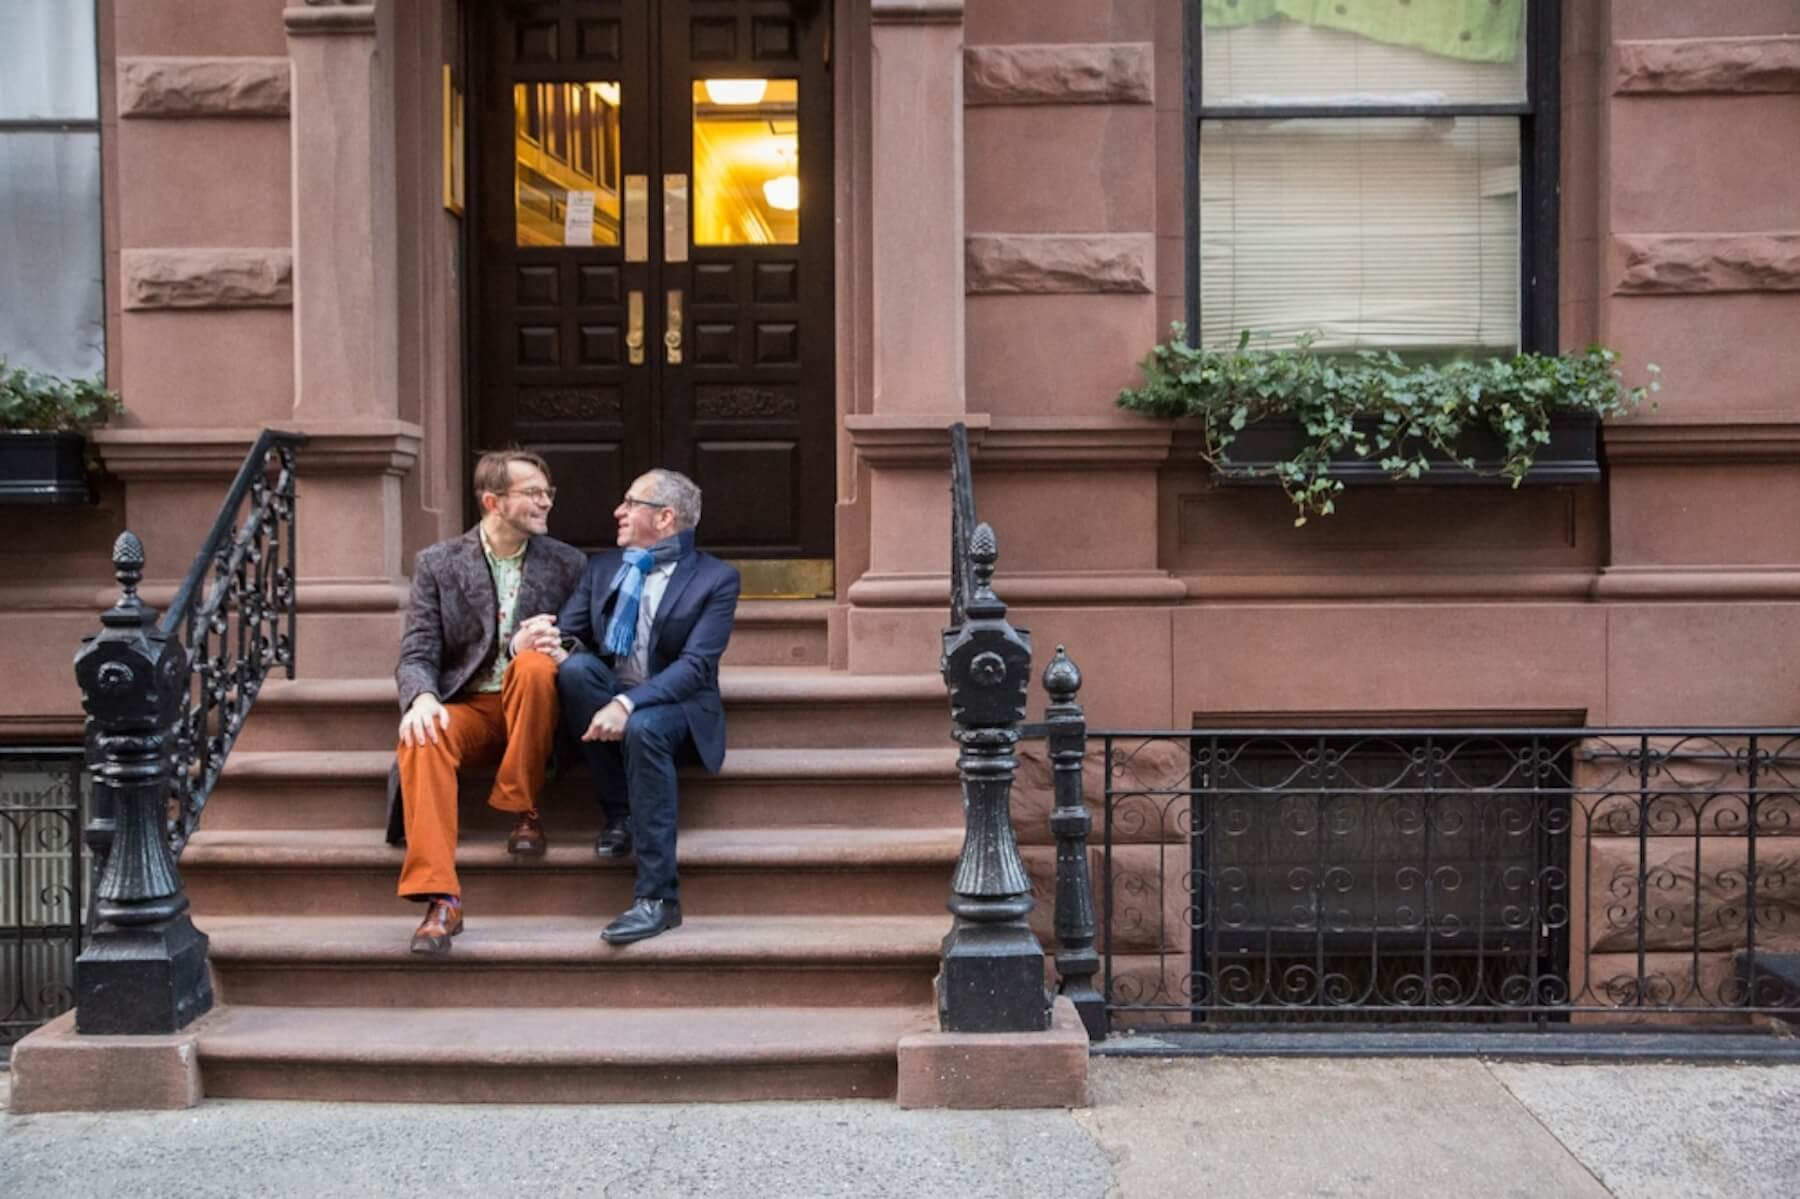 LGBTQ+ couple sitting together and holding hands on steps in Greenwich Village, New York City USA